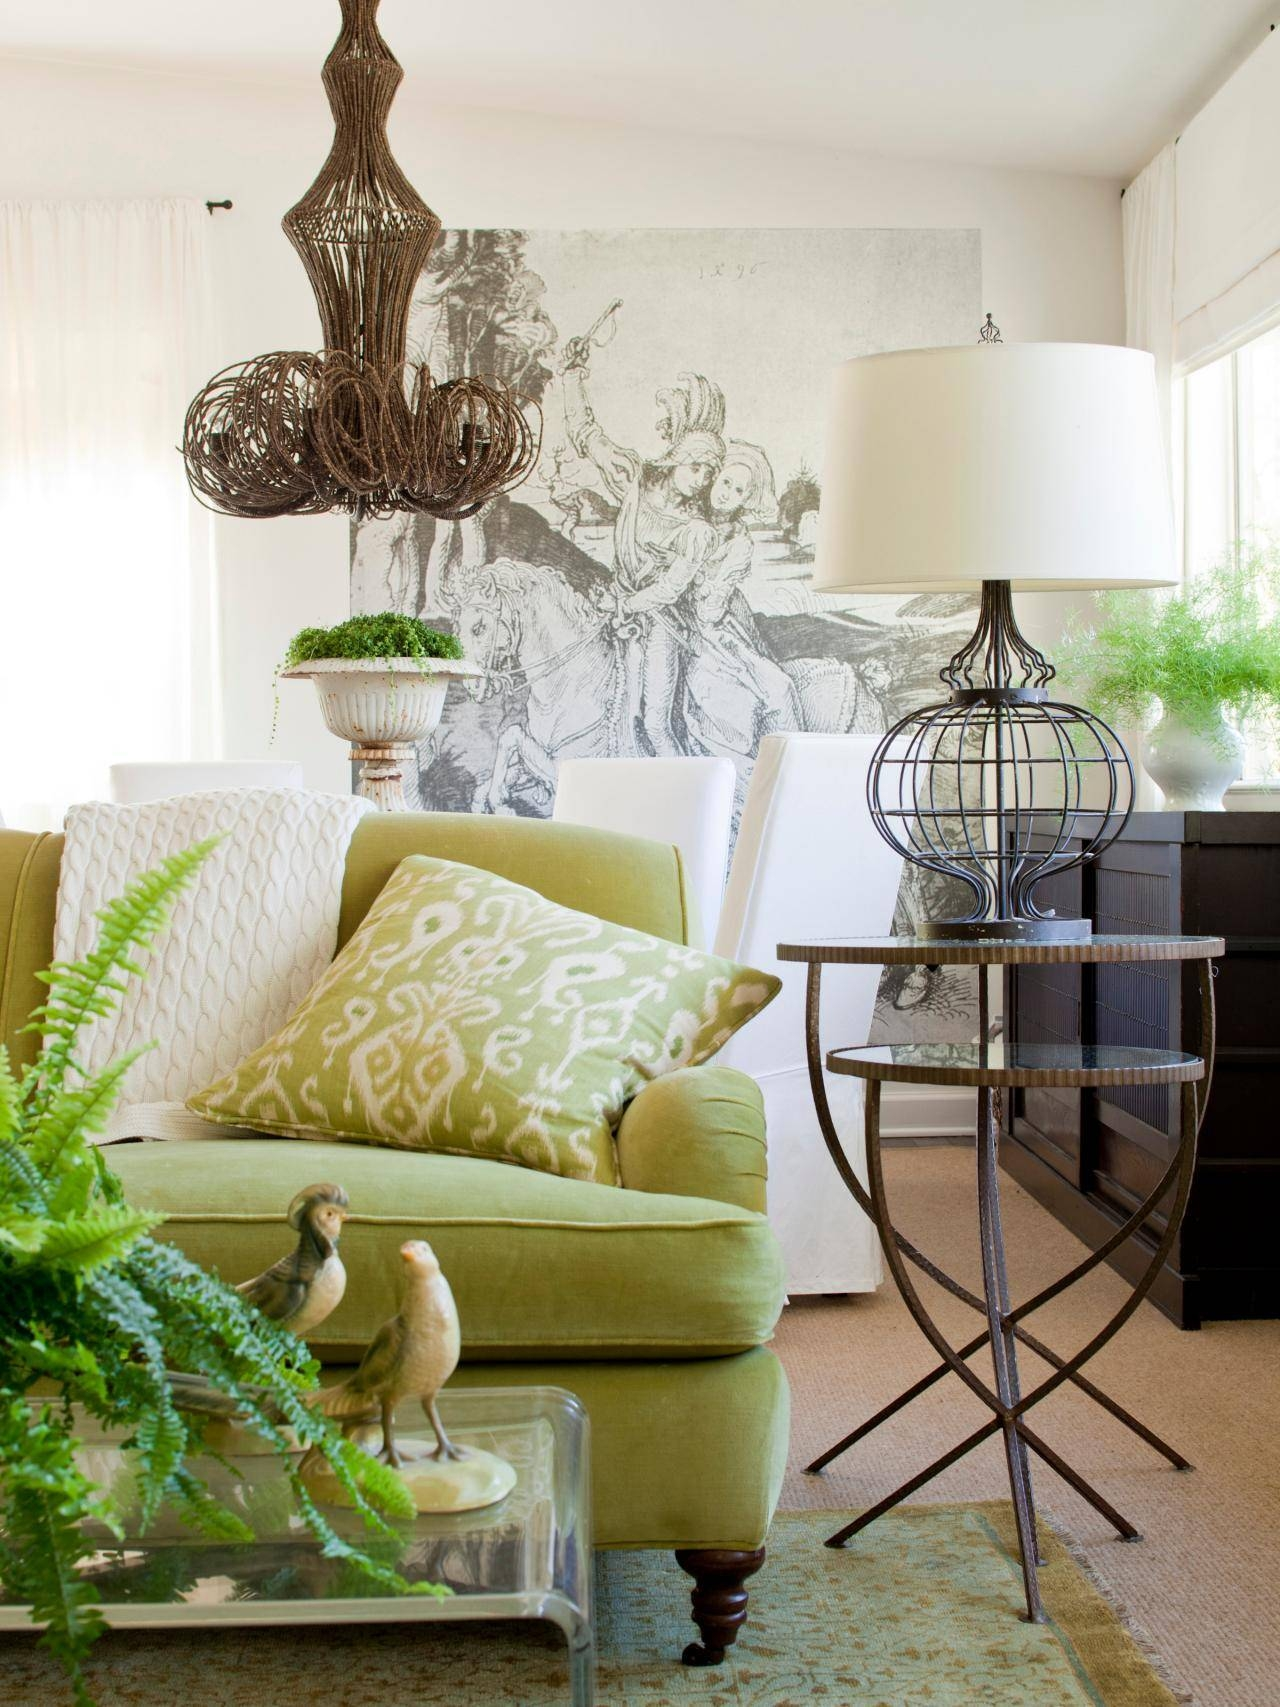 Furniture: Amusing Mint Green Floral Sofa Design Sage Green Sofa intended for Mint Green Sofas (Image 7 of 15)